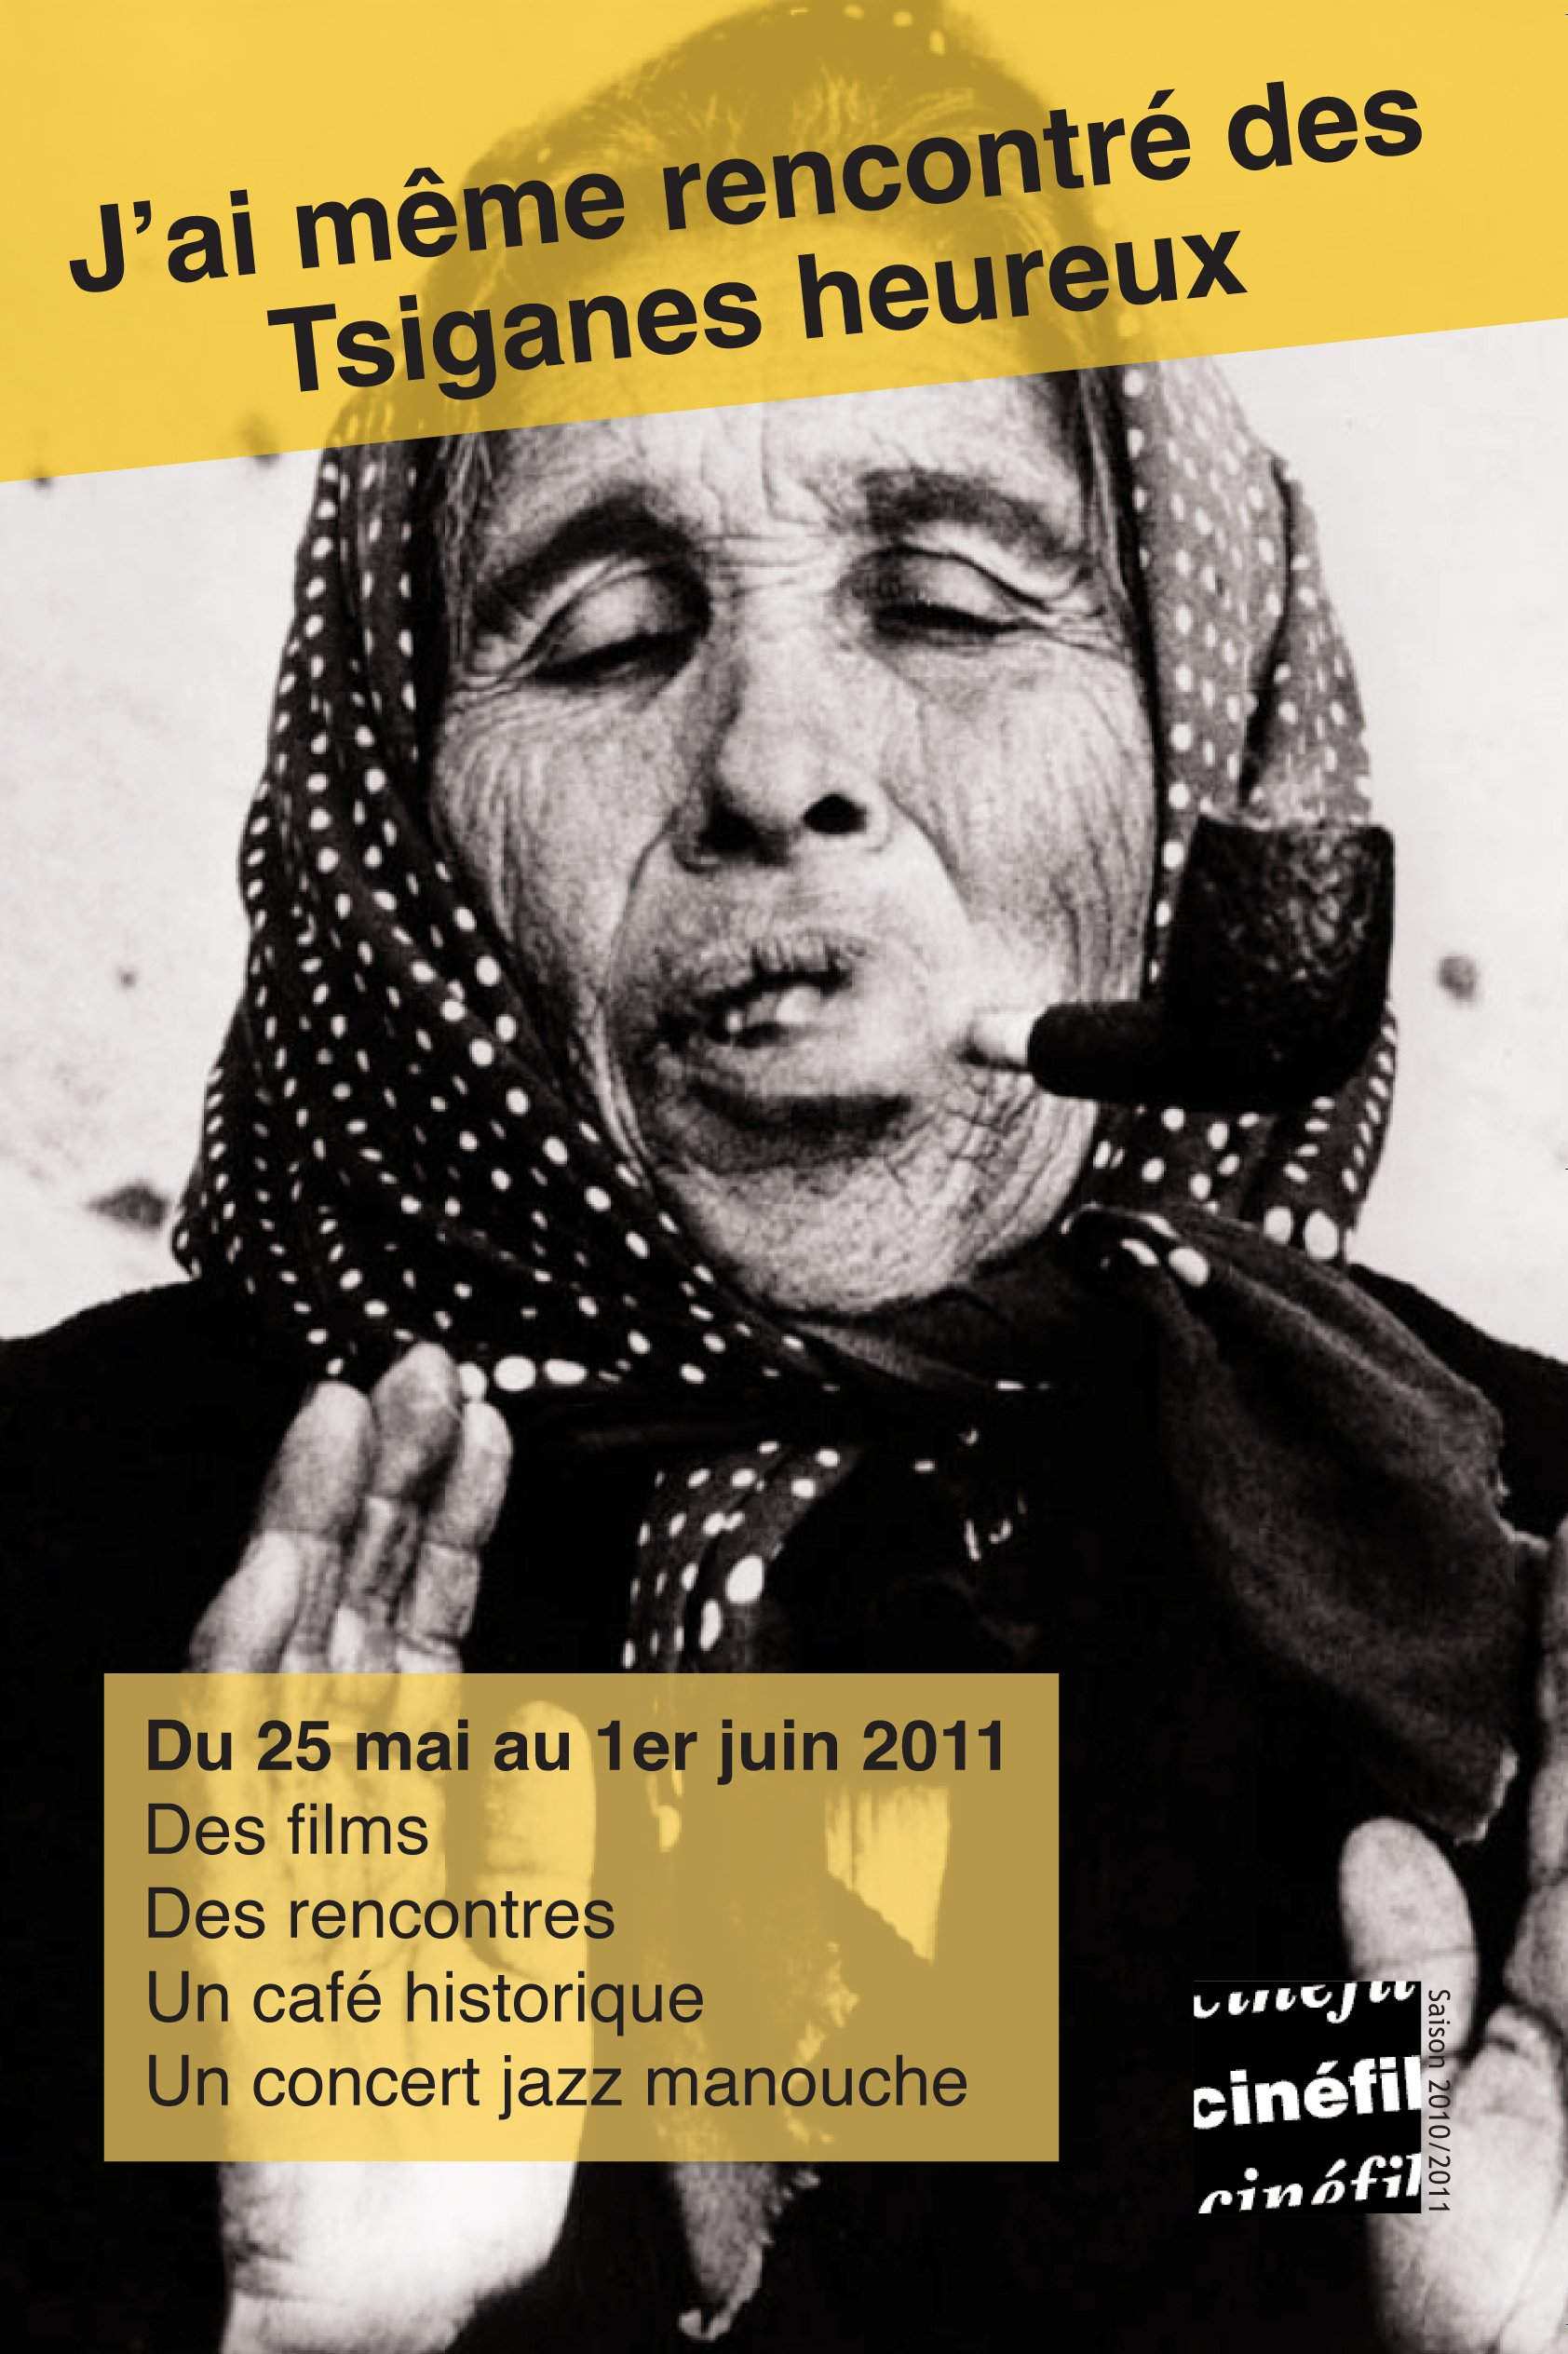 4481304679950visuelsemainetsigane.jpg